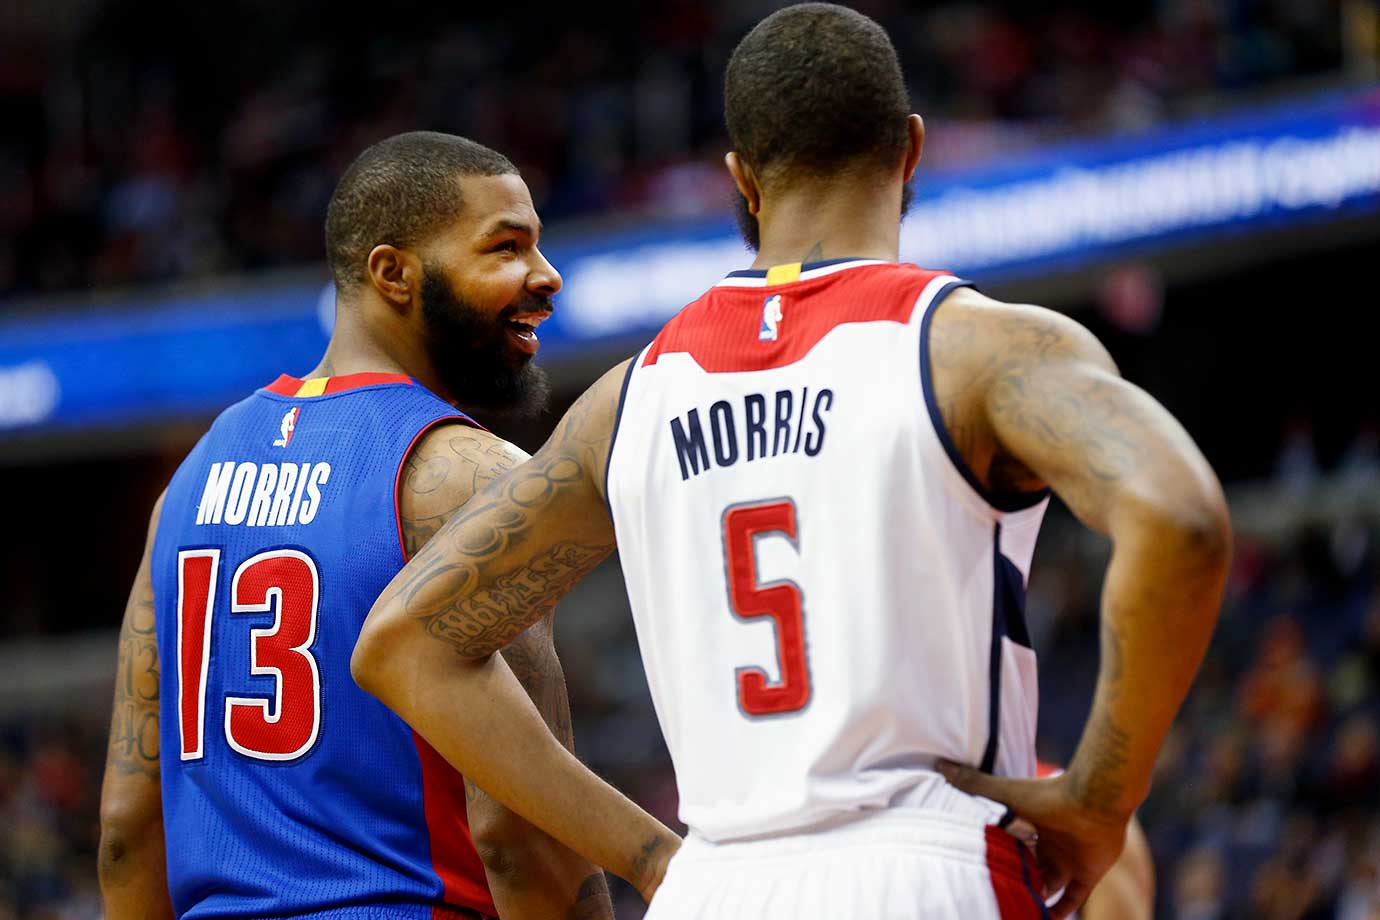 Marcus Morris of the Detroit Pistons talks with his twin brother Markieff of the Washington Wizards.